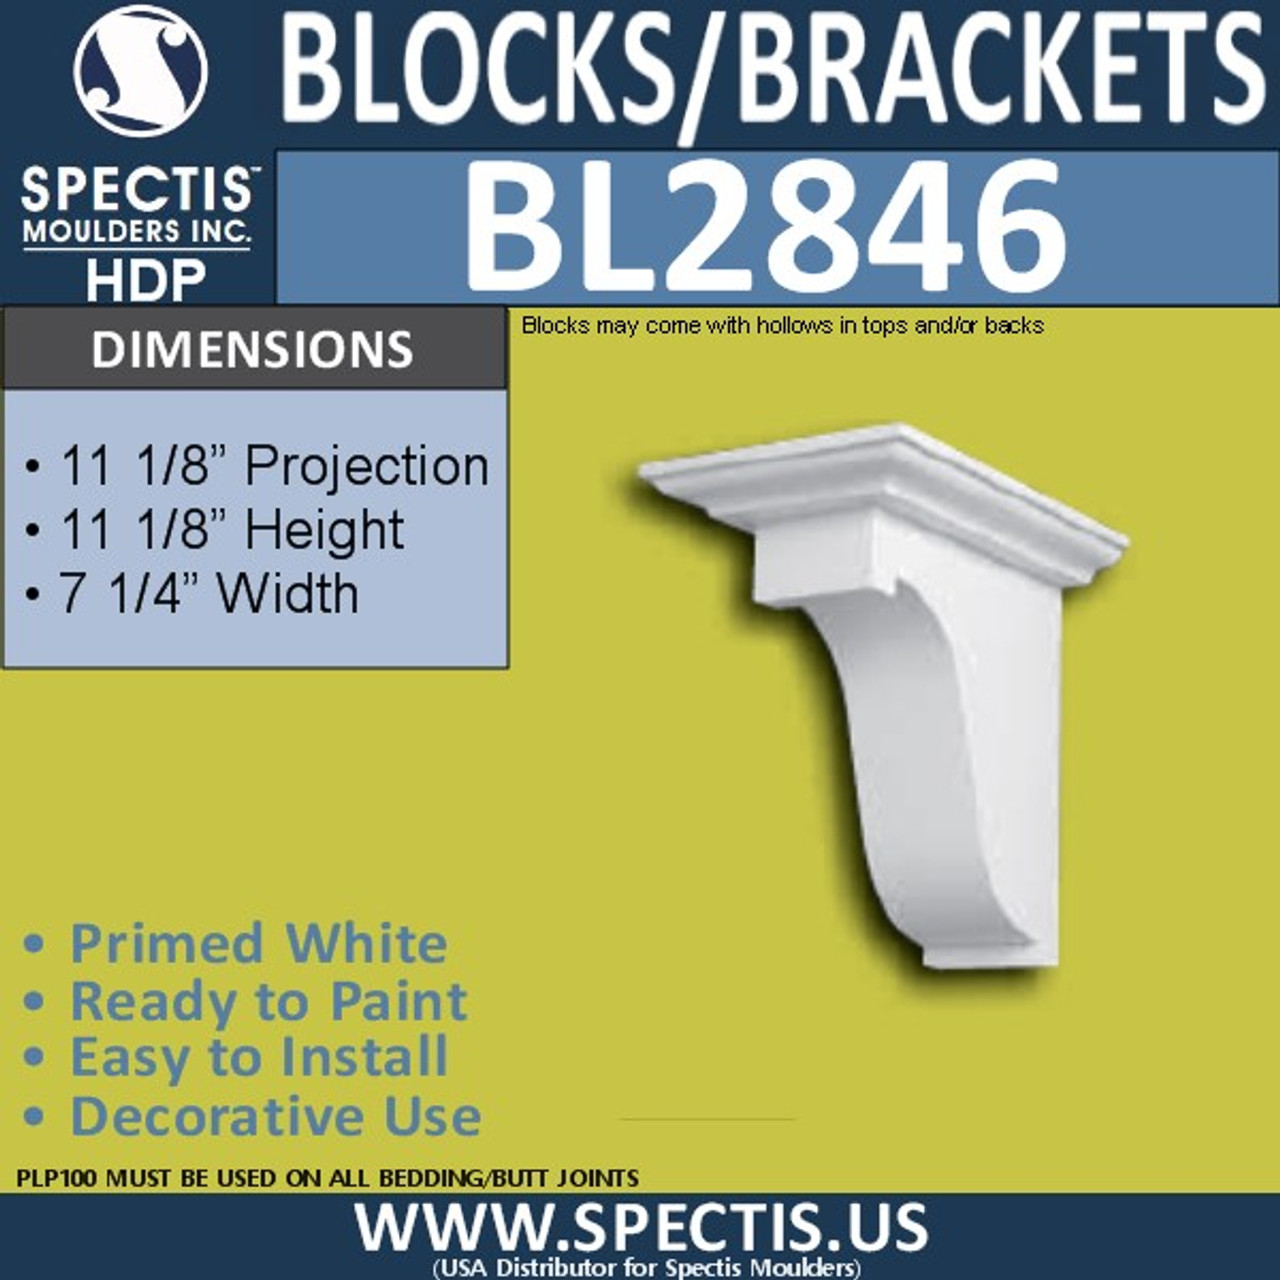 "BL2846 Eave Block or Bracket 7.25""W x 11.25""H x 11.25"" P"